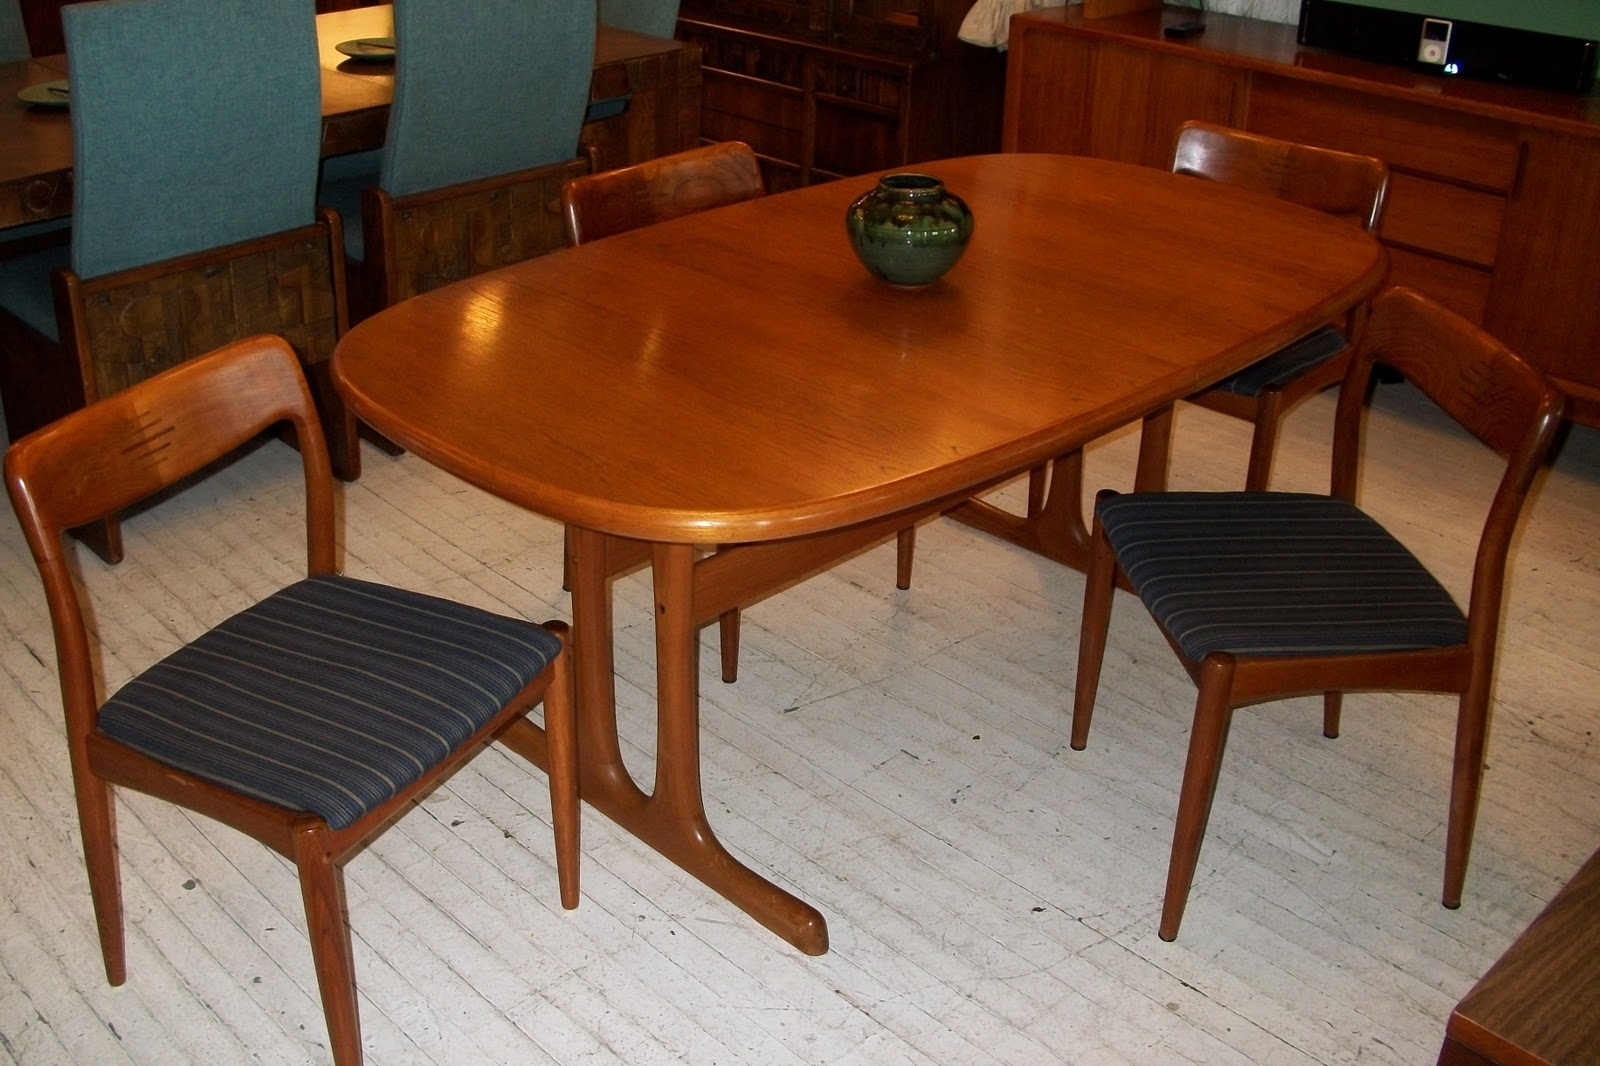 D Scan Solid Teak Dining Room Table & 4 Chairs   An Orange 30+ Mid Century Modern Teak Dining Room Table Inspirations